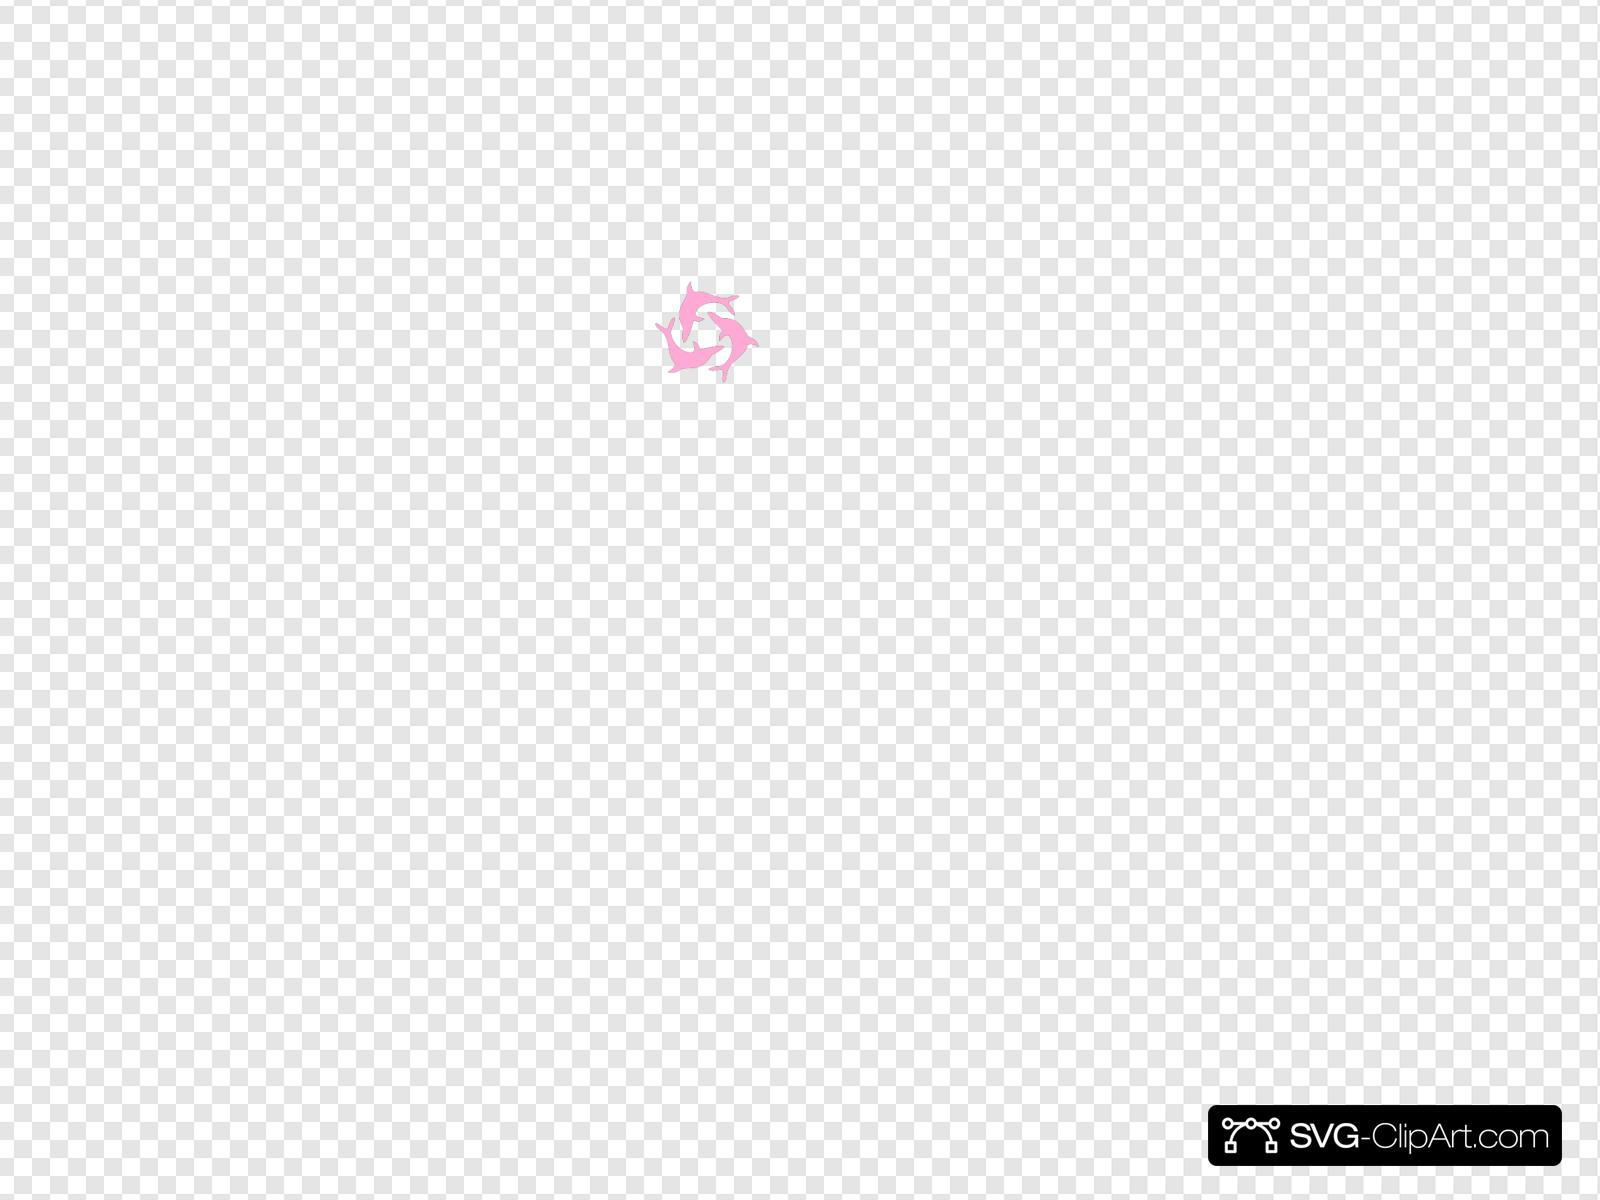 Pink Dolphin Triad Clip art, Icon and SVG - SVG Clipart